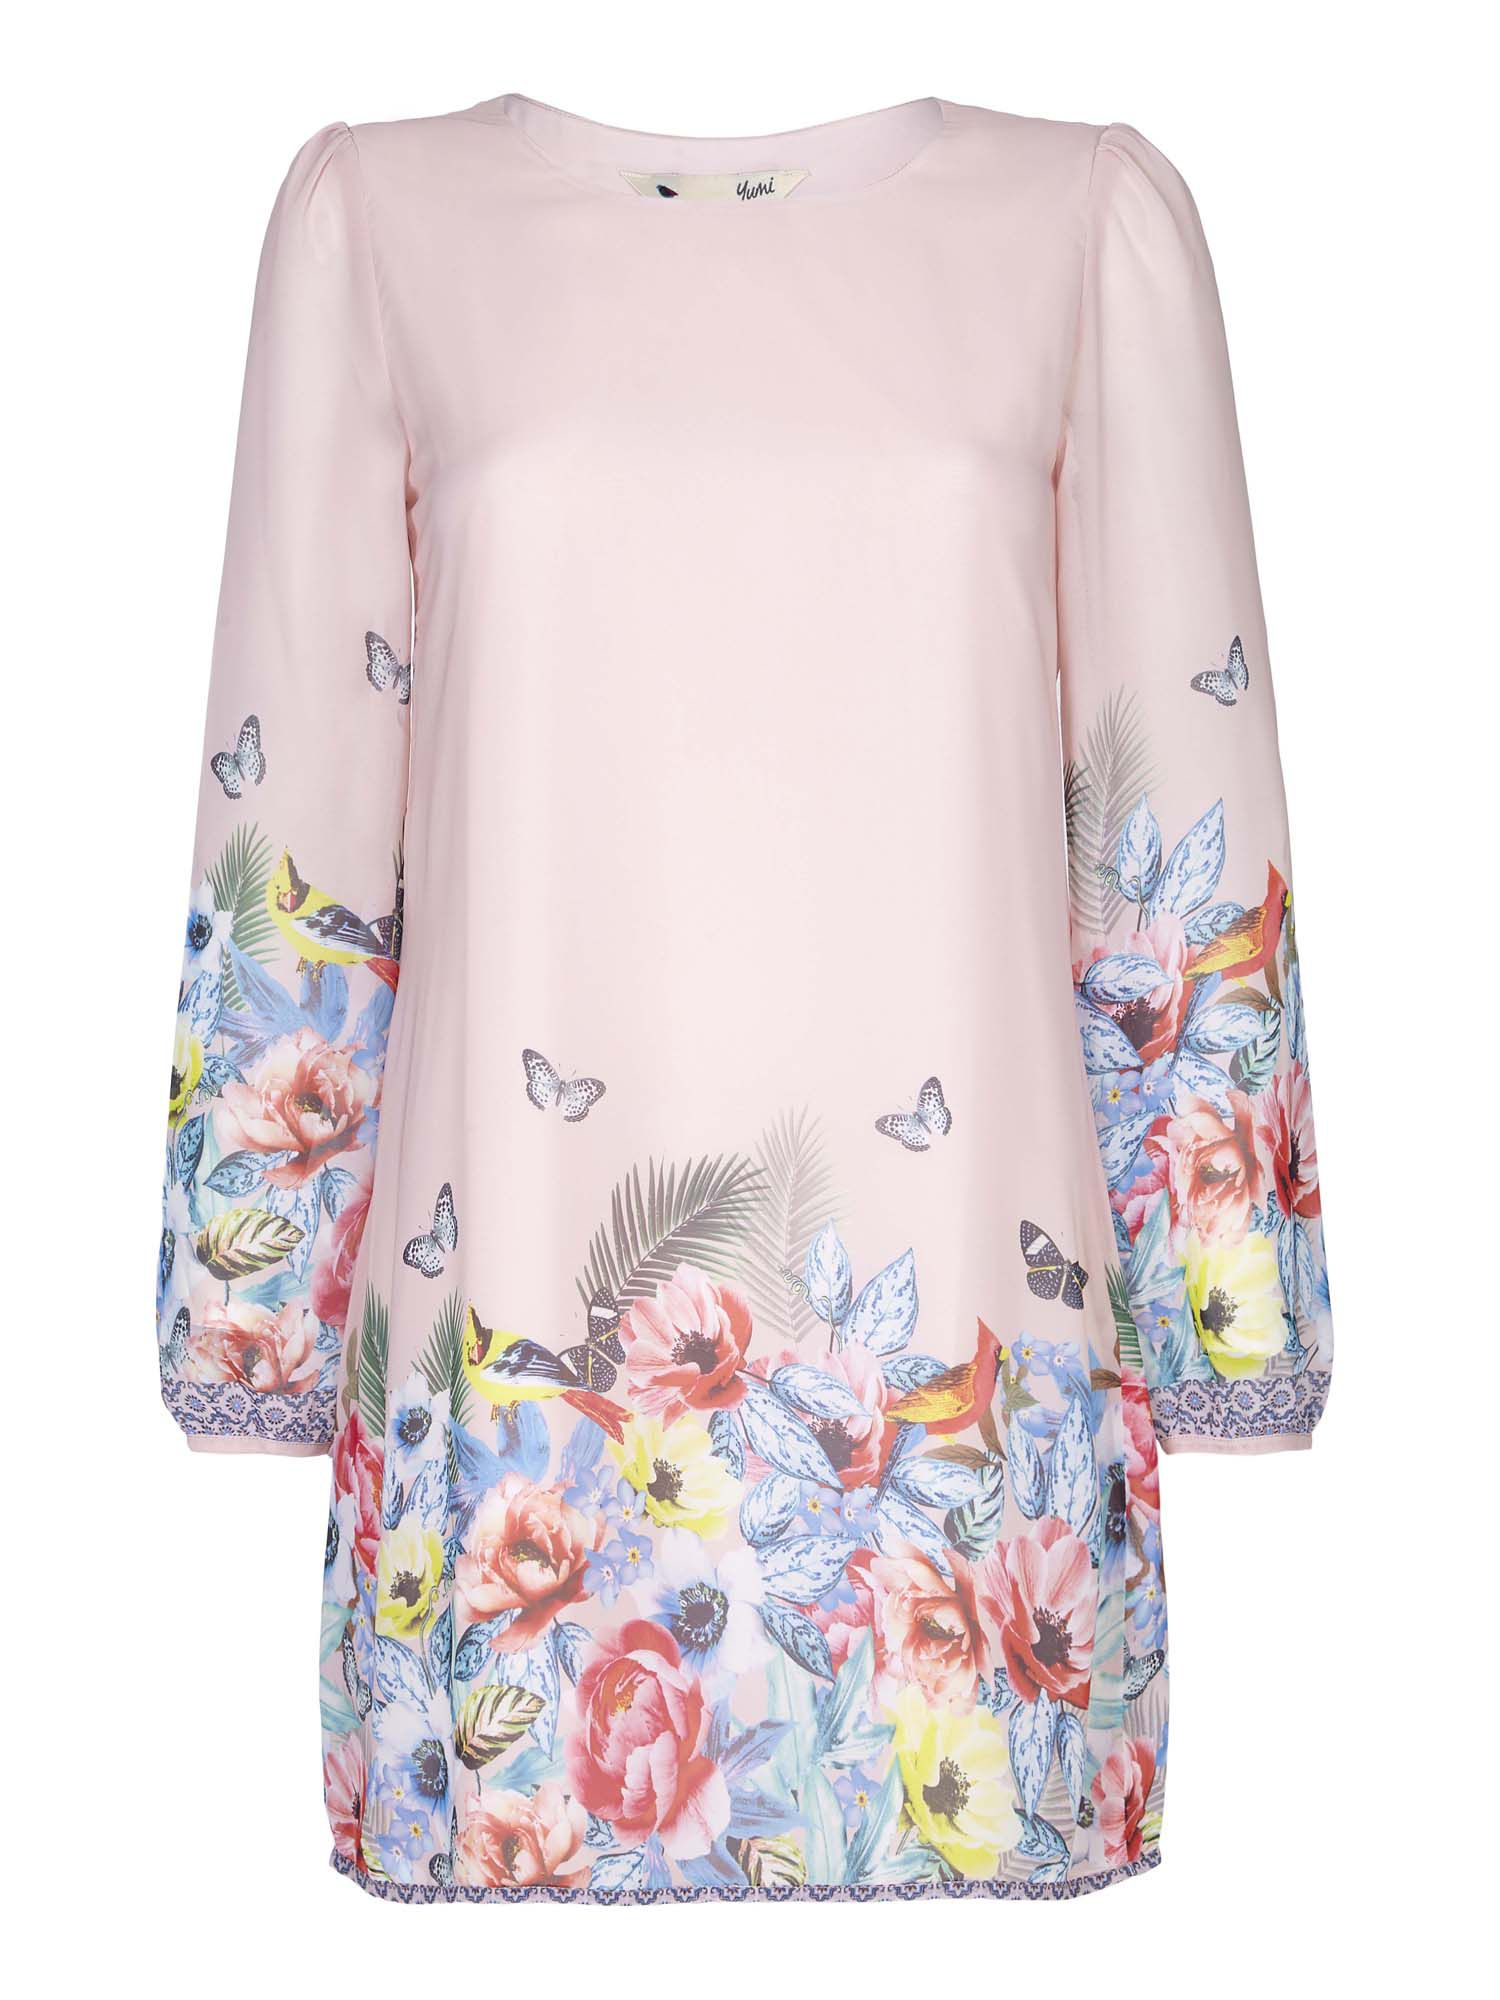 Yumi Tropcial Floral Tunic Dress, Pink